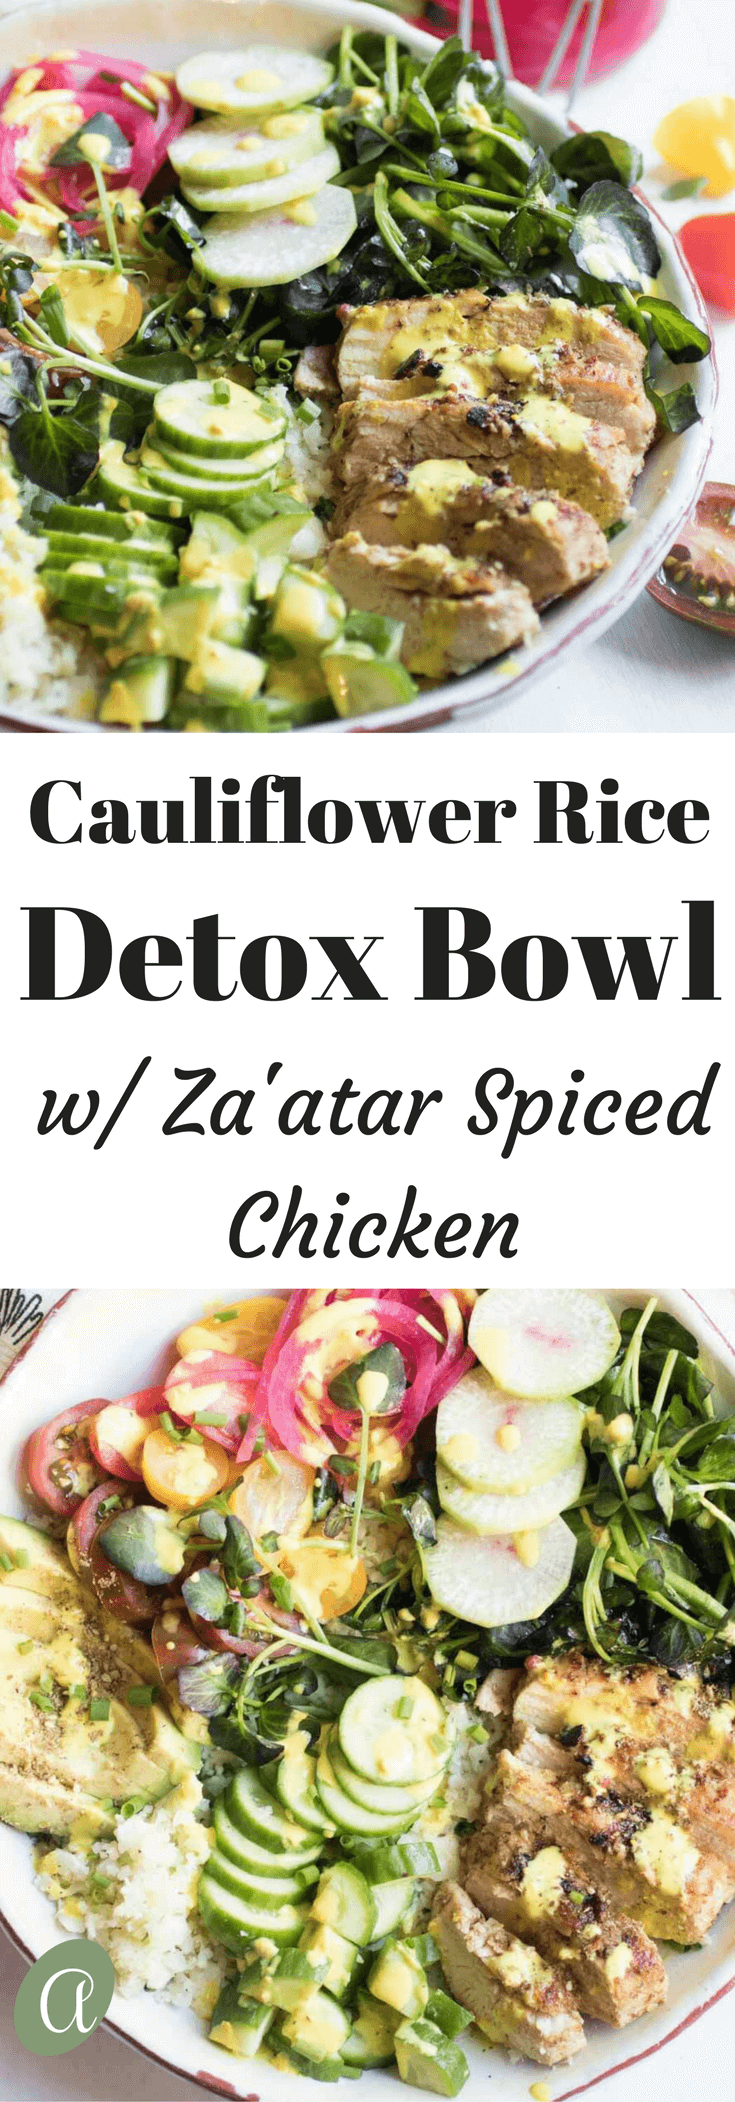 Cauliflower Rice Detox Bowl with Za'atar Spiced Chicken is full of antioxidants, vitamins, and minerals, and is quite possibly the best detox meal around!